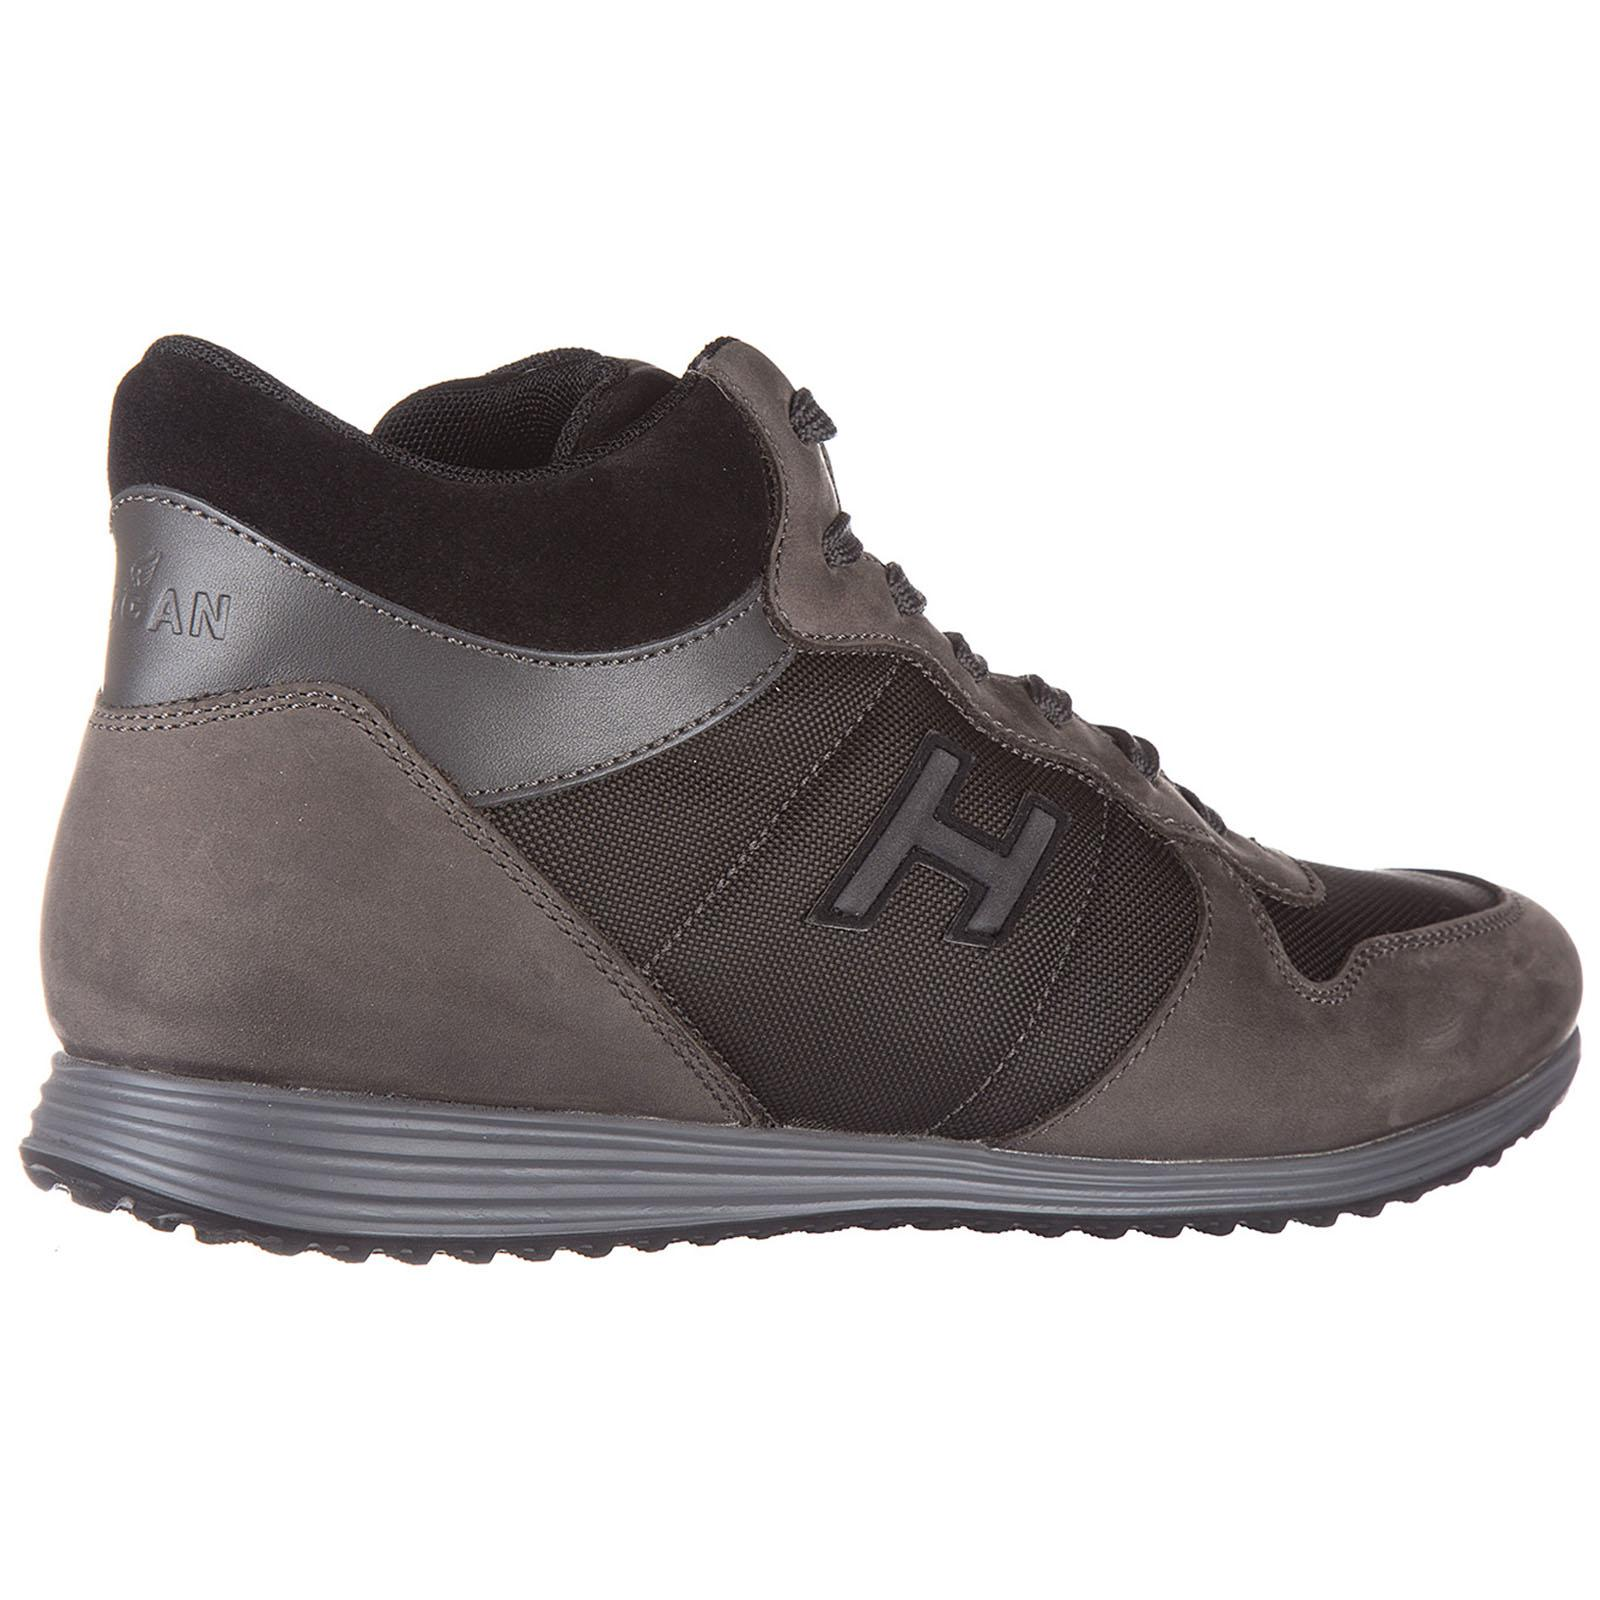 Hogan Shoes Leather Trainers Sneakers Mid Cut H205 Olympia H Flock ...